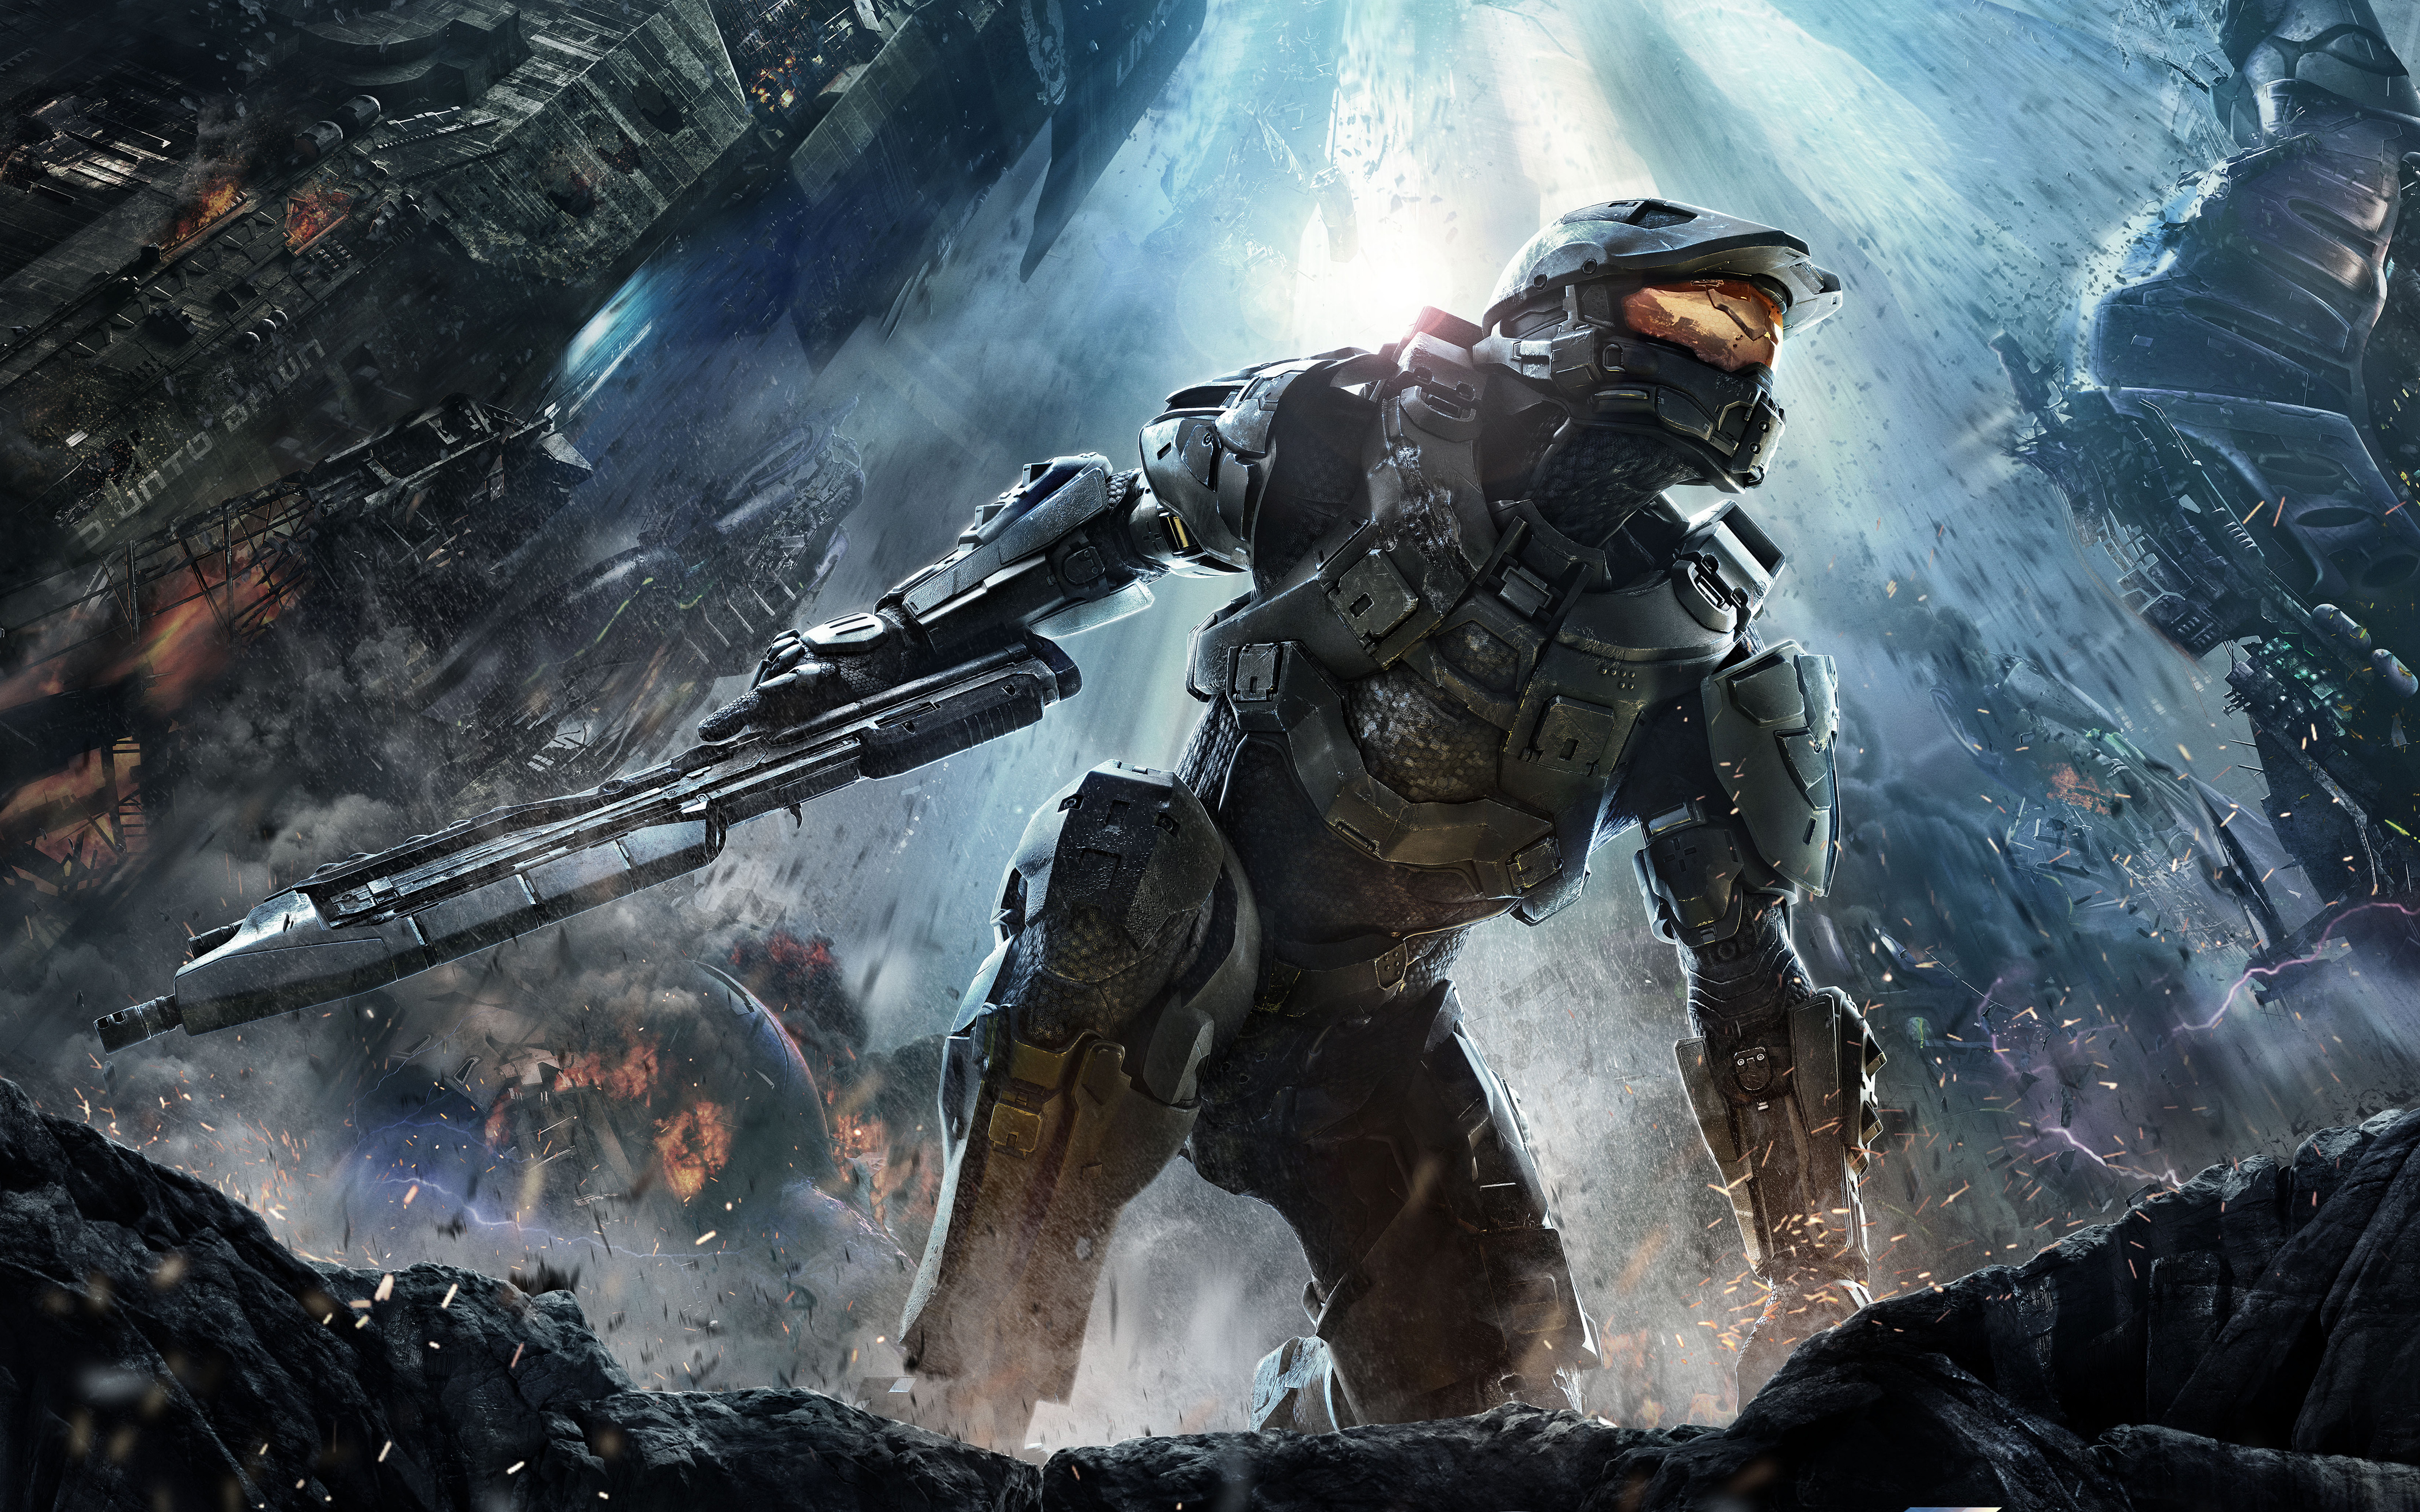 Halo 4 4k Ultra HD Wallpaper Background Image 4200x2625 ID 4200x2625